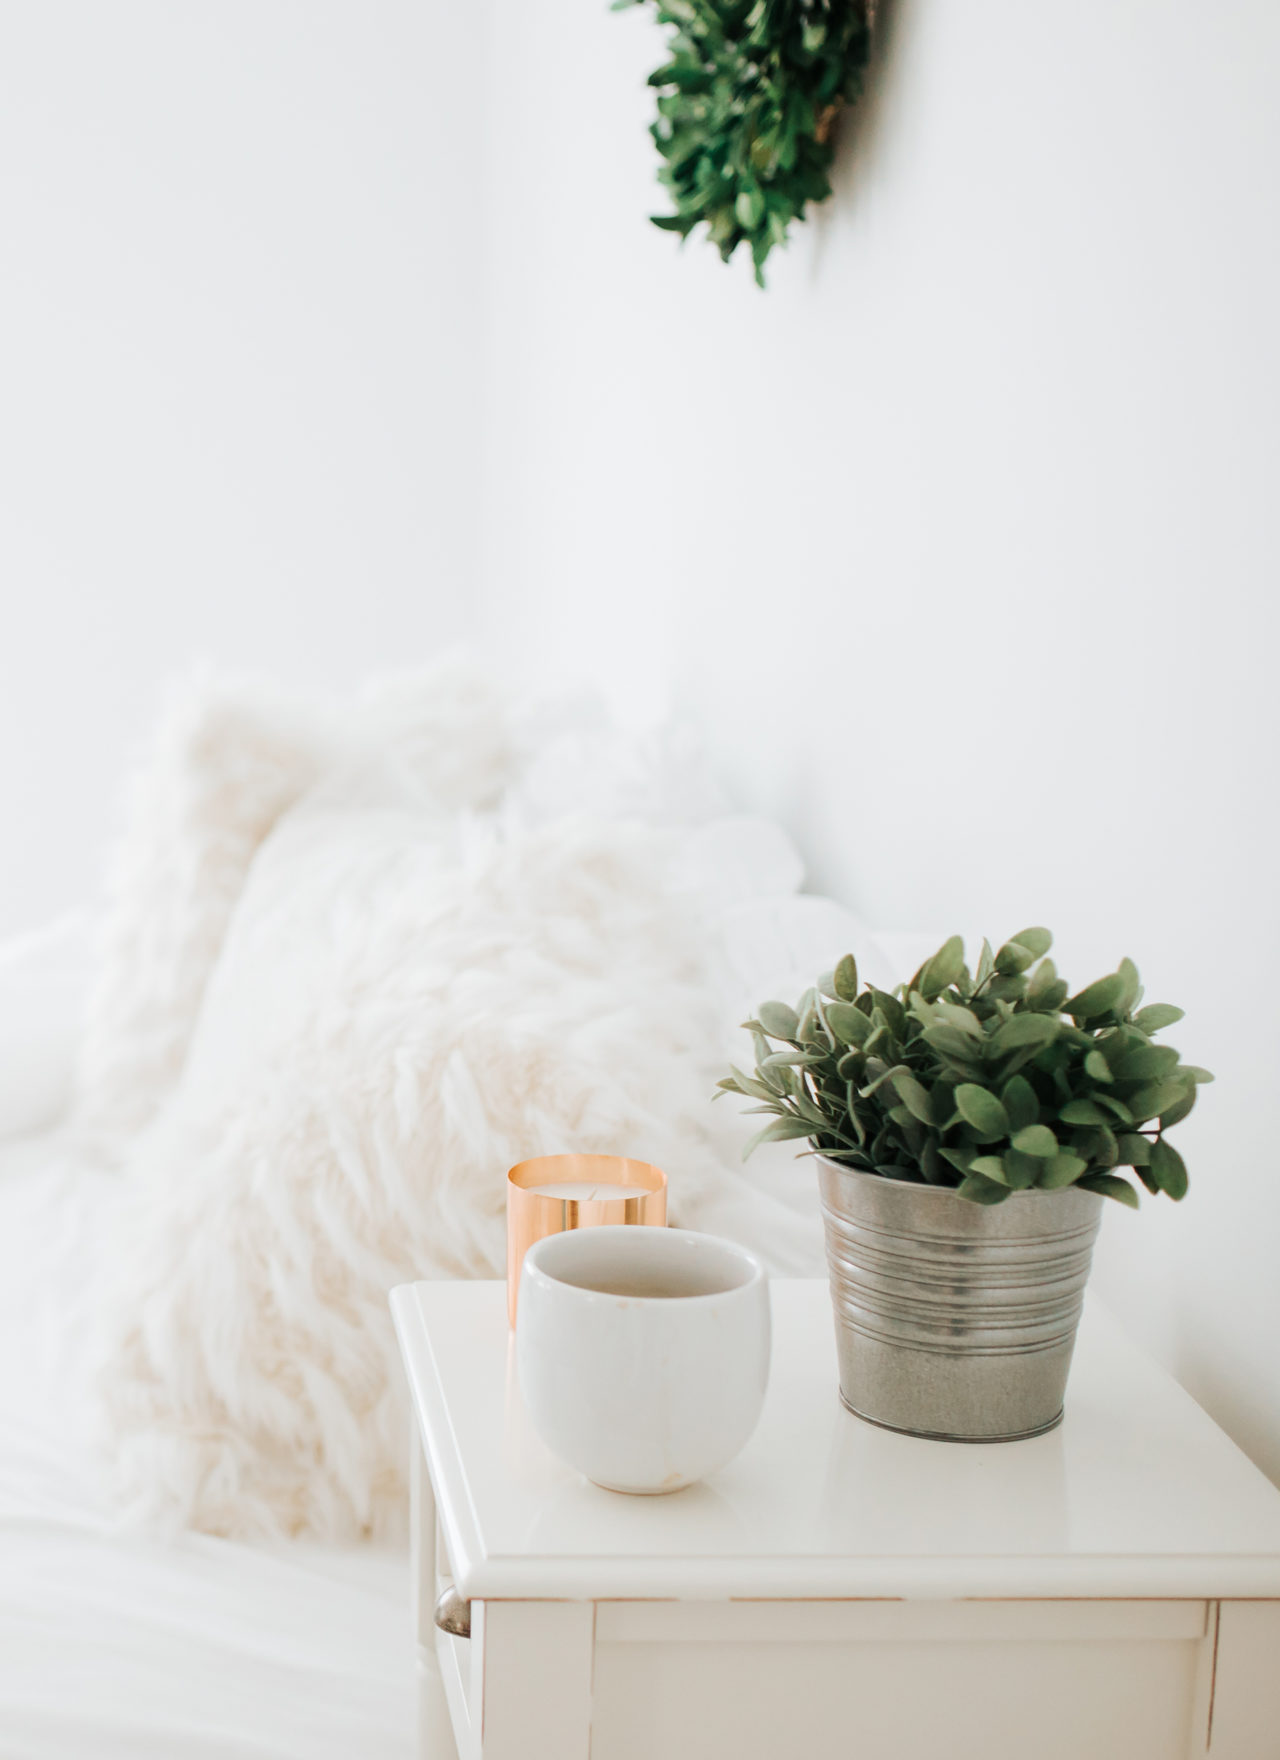 31-Day Self-Care Challenge